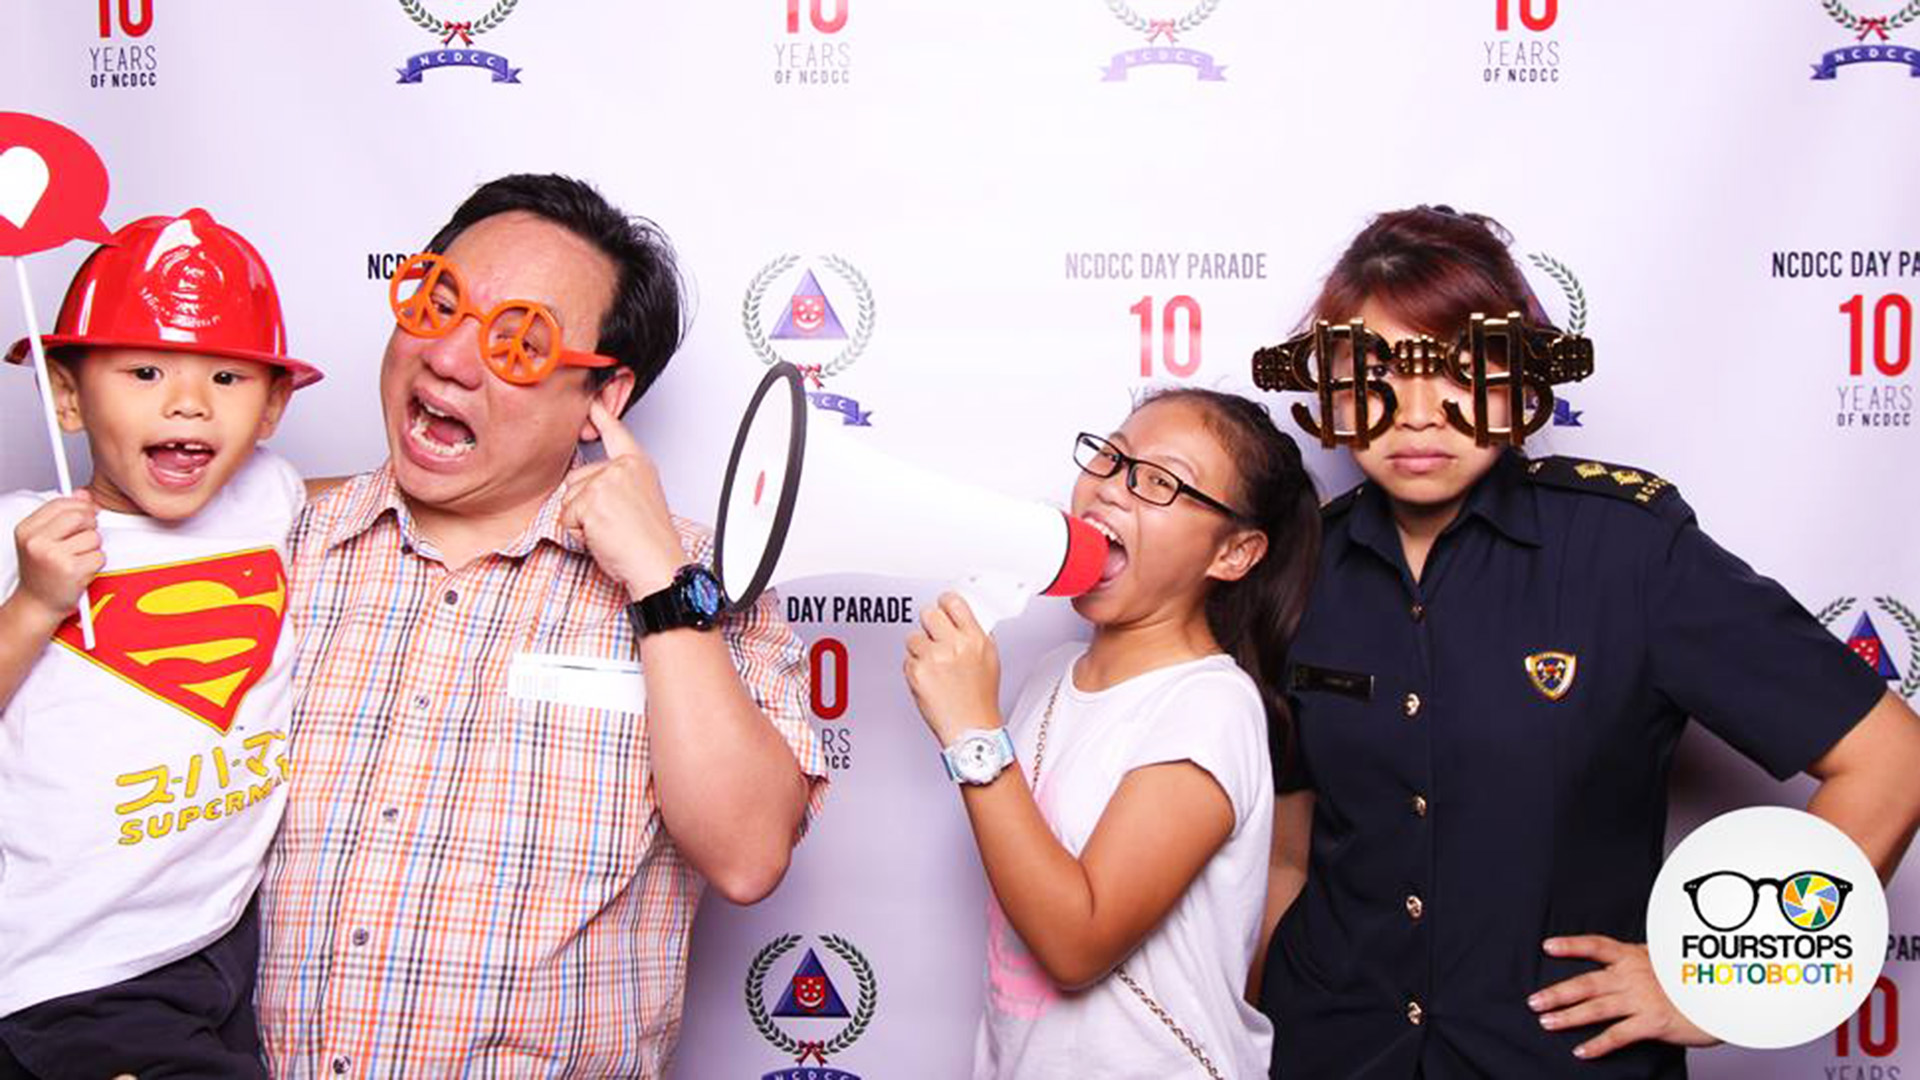 Fourstops • Singapore Photobooth • NCDCC 10th Anniversary Parade